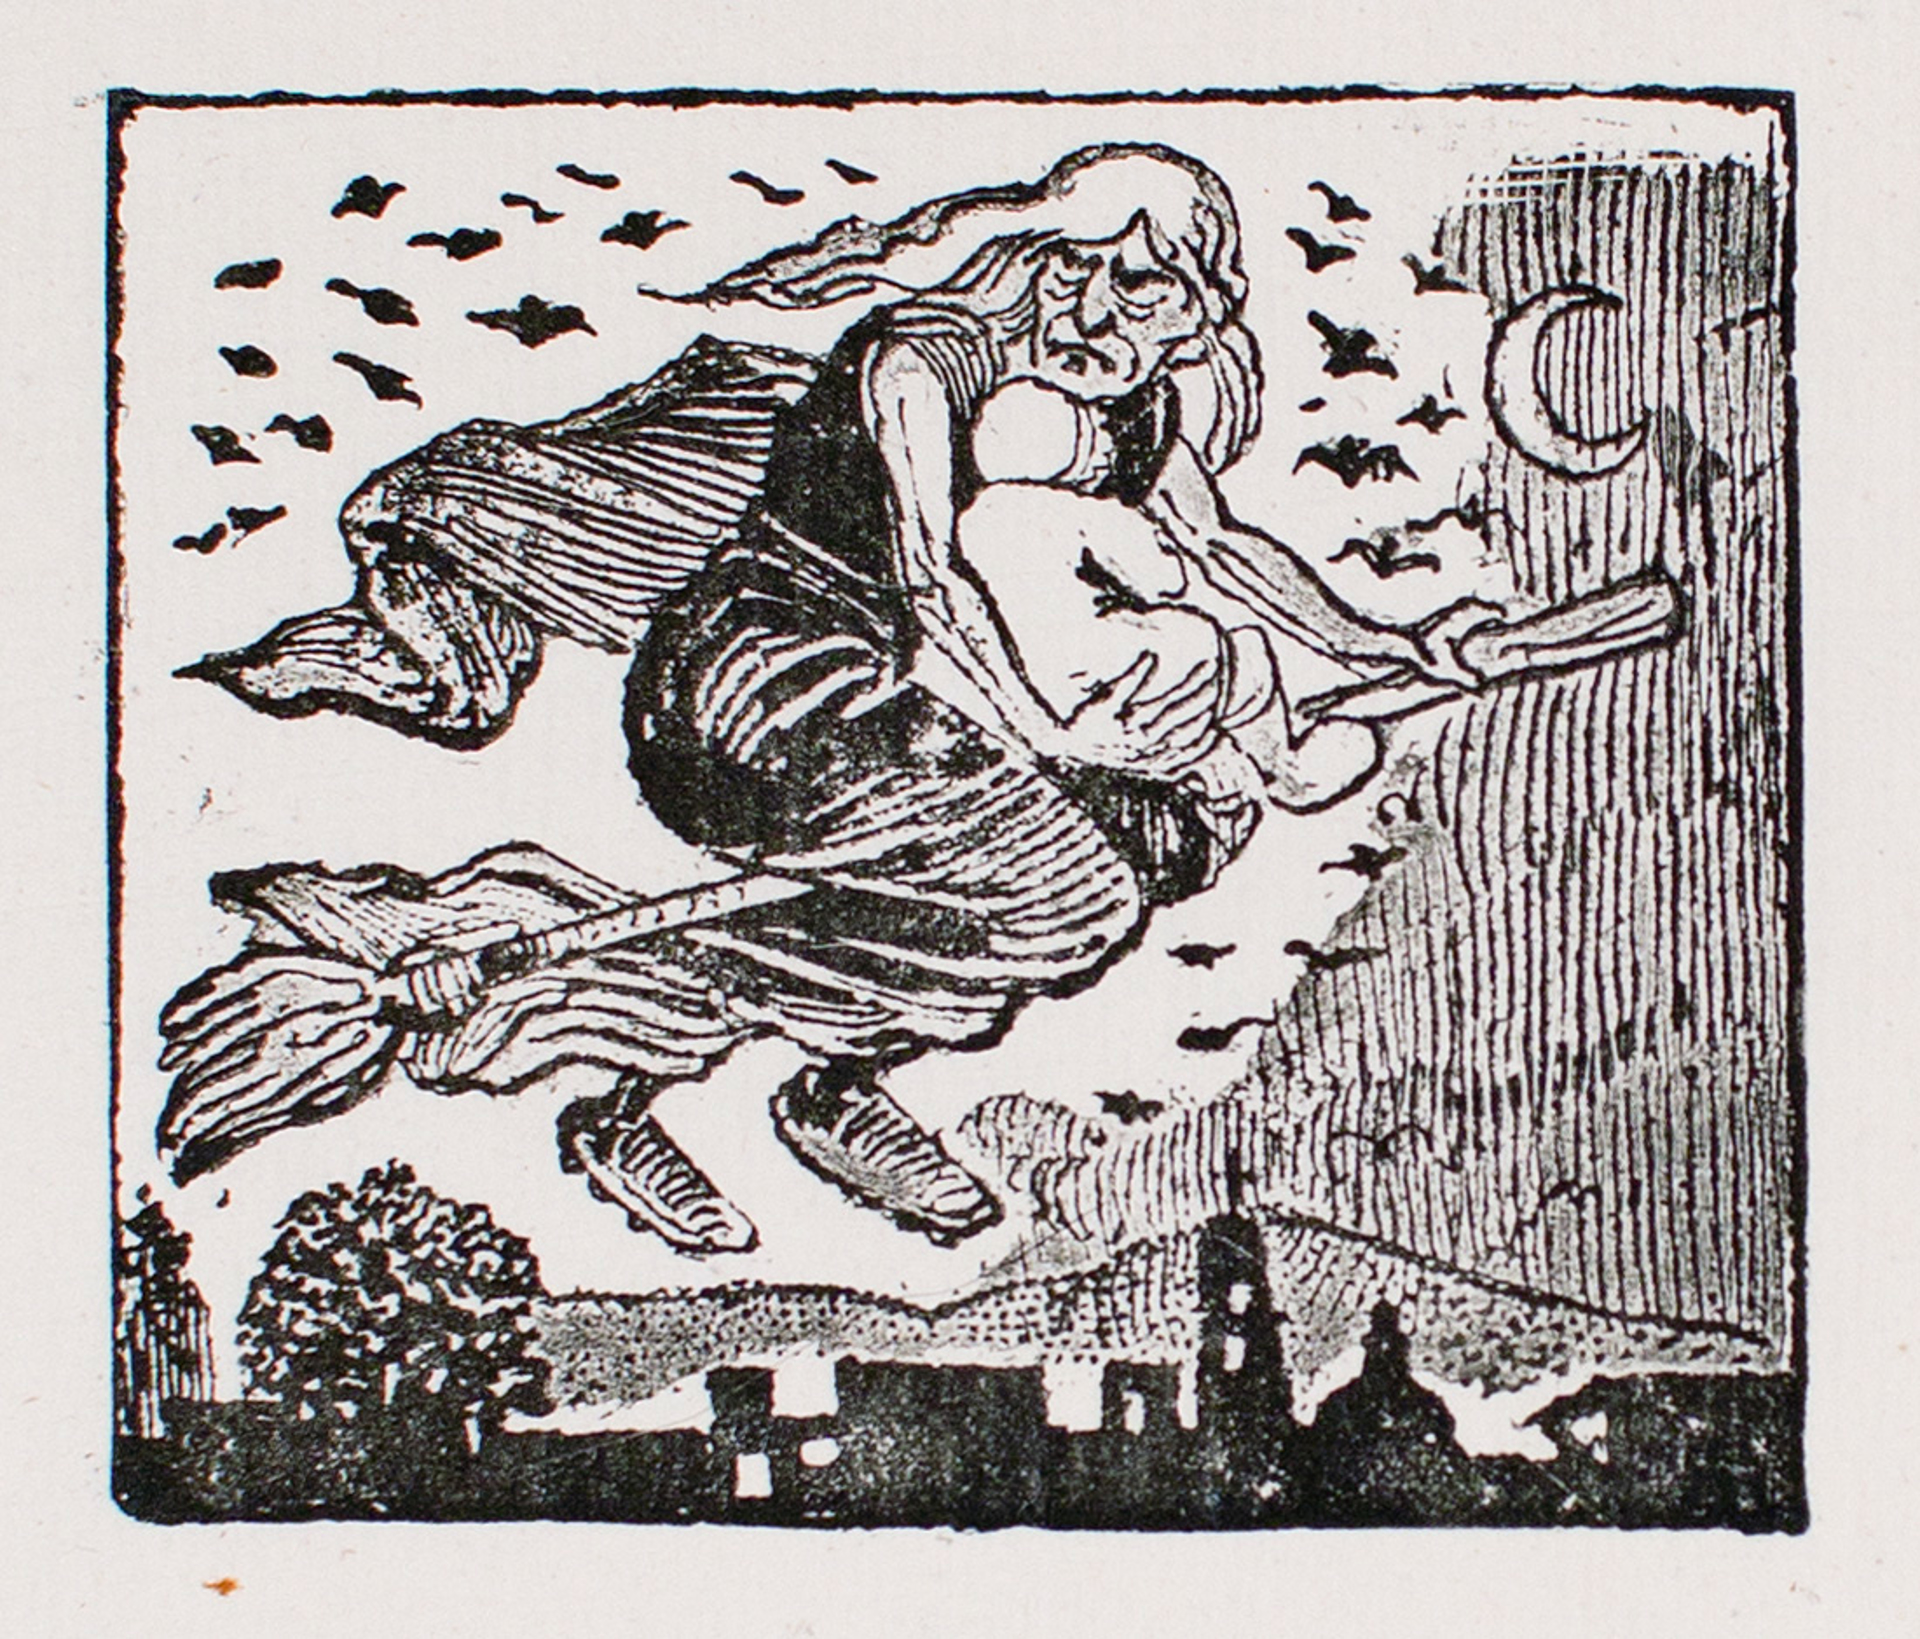 A witch carrying a child on her broom by José Guadalupe Posada (1852 - 1913)